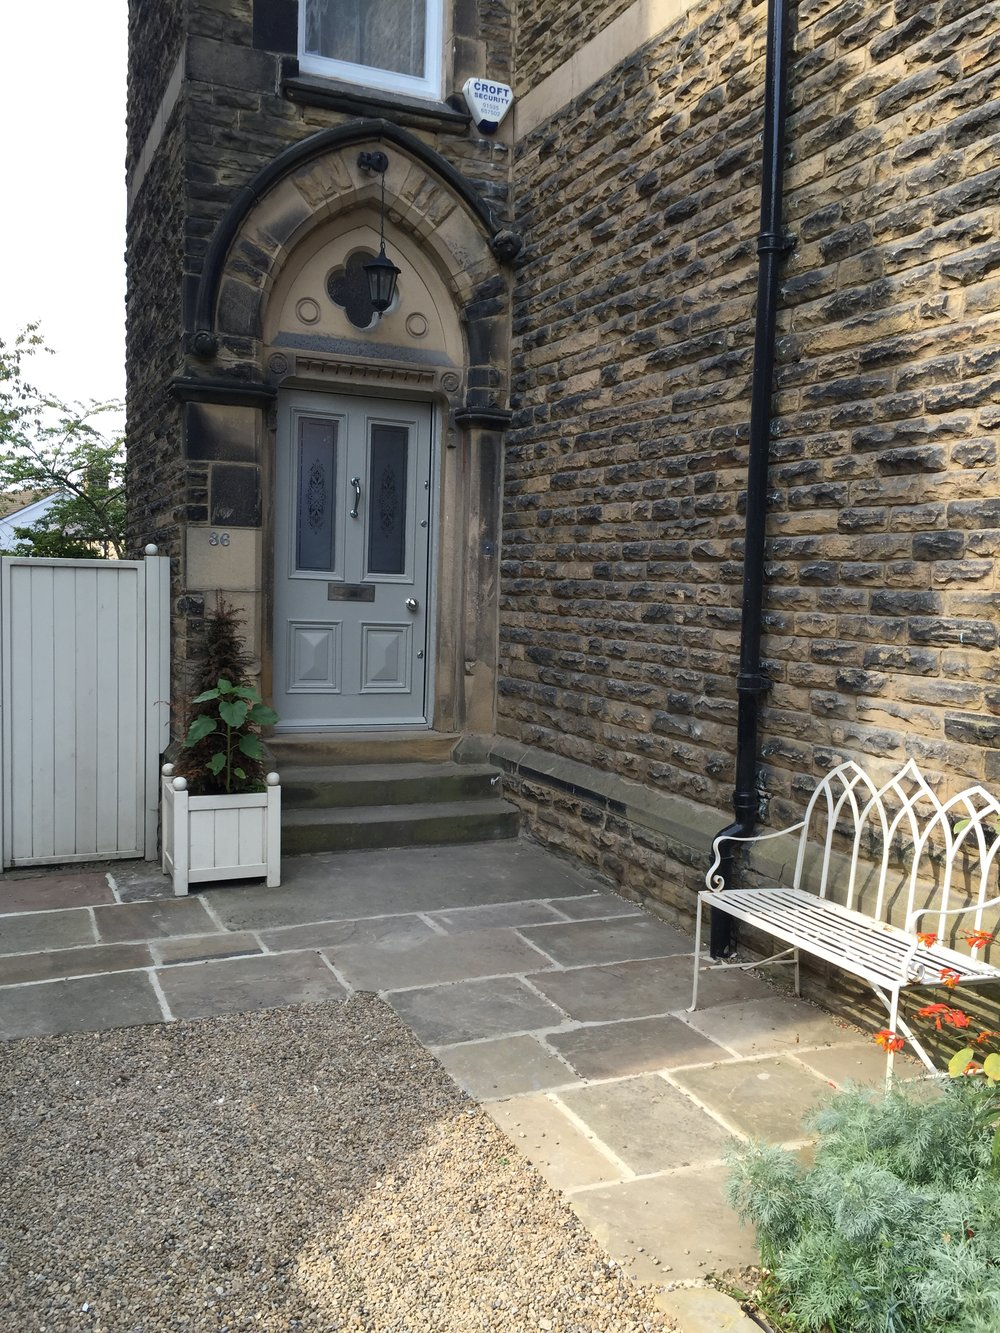 Reclaimed Yorkshire flags and seat at the house entrance.